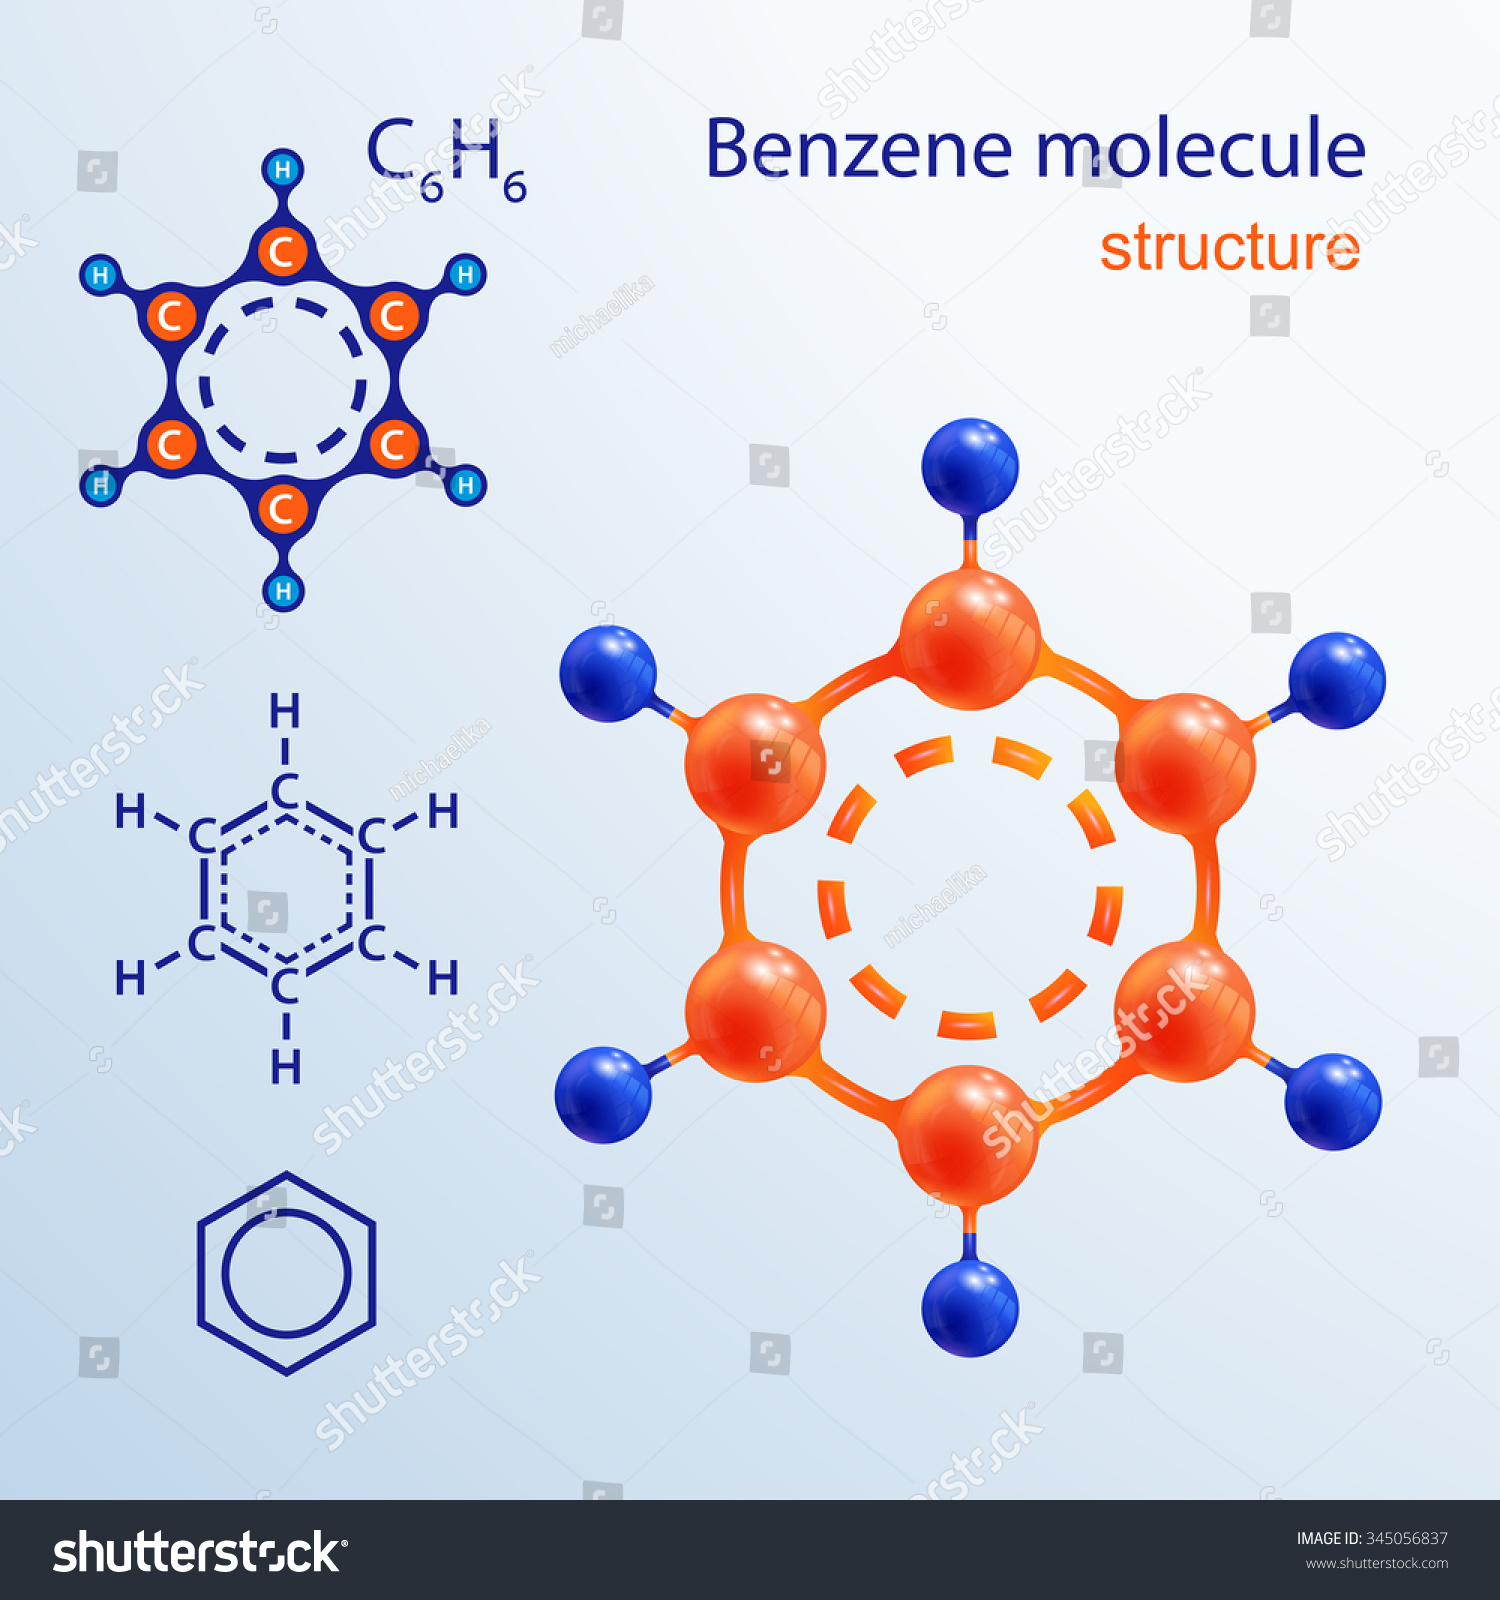 3 D Benzene Molecule. Icon And Chemical Formula, C6h6, 2d